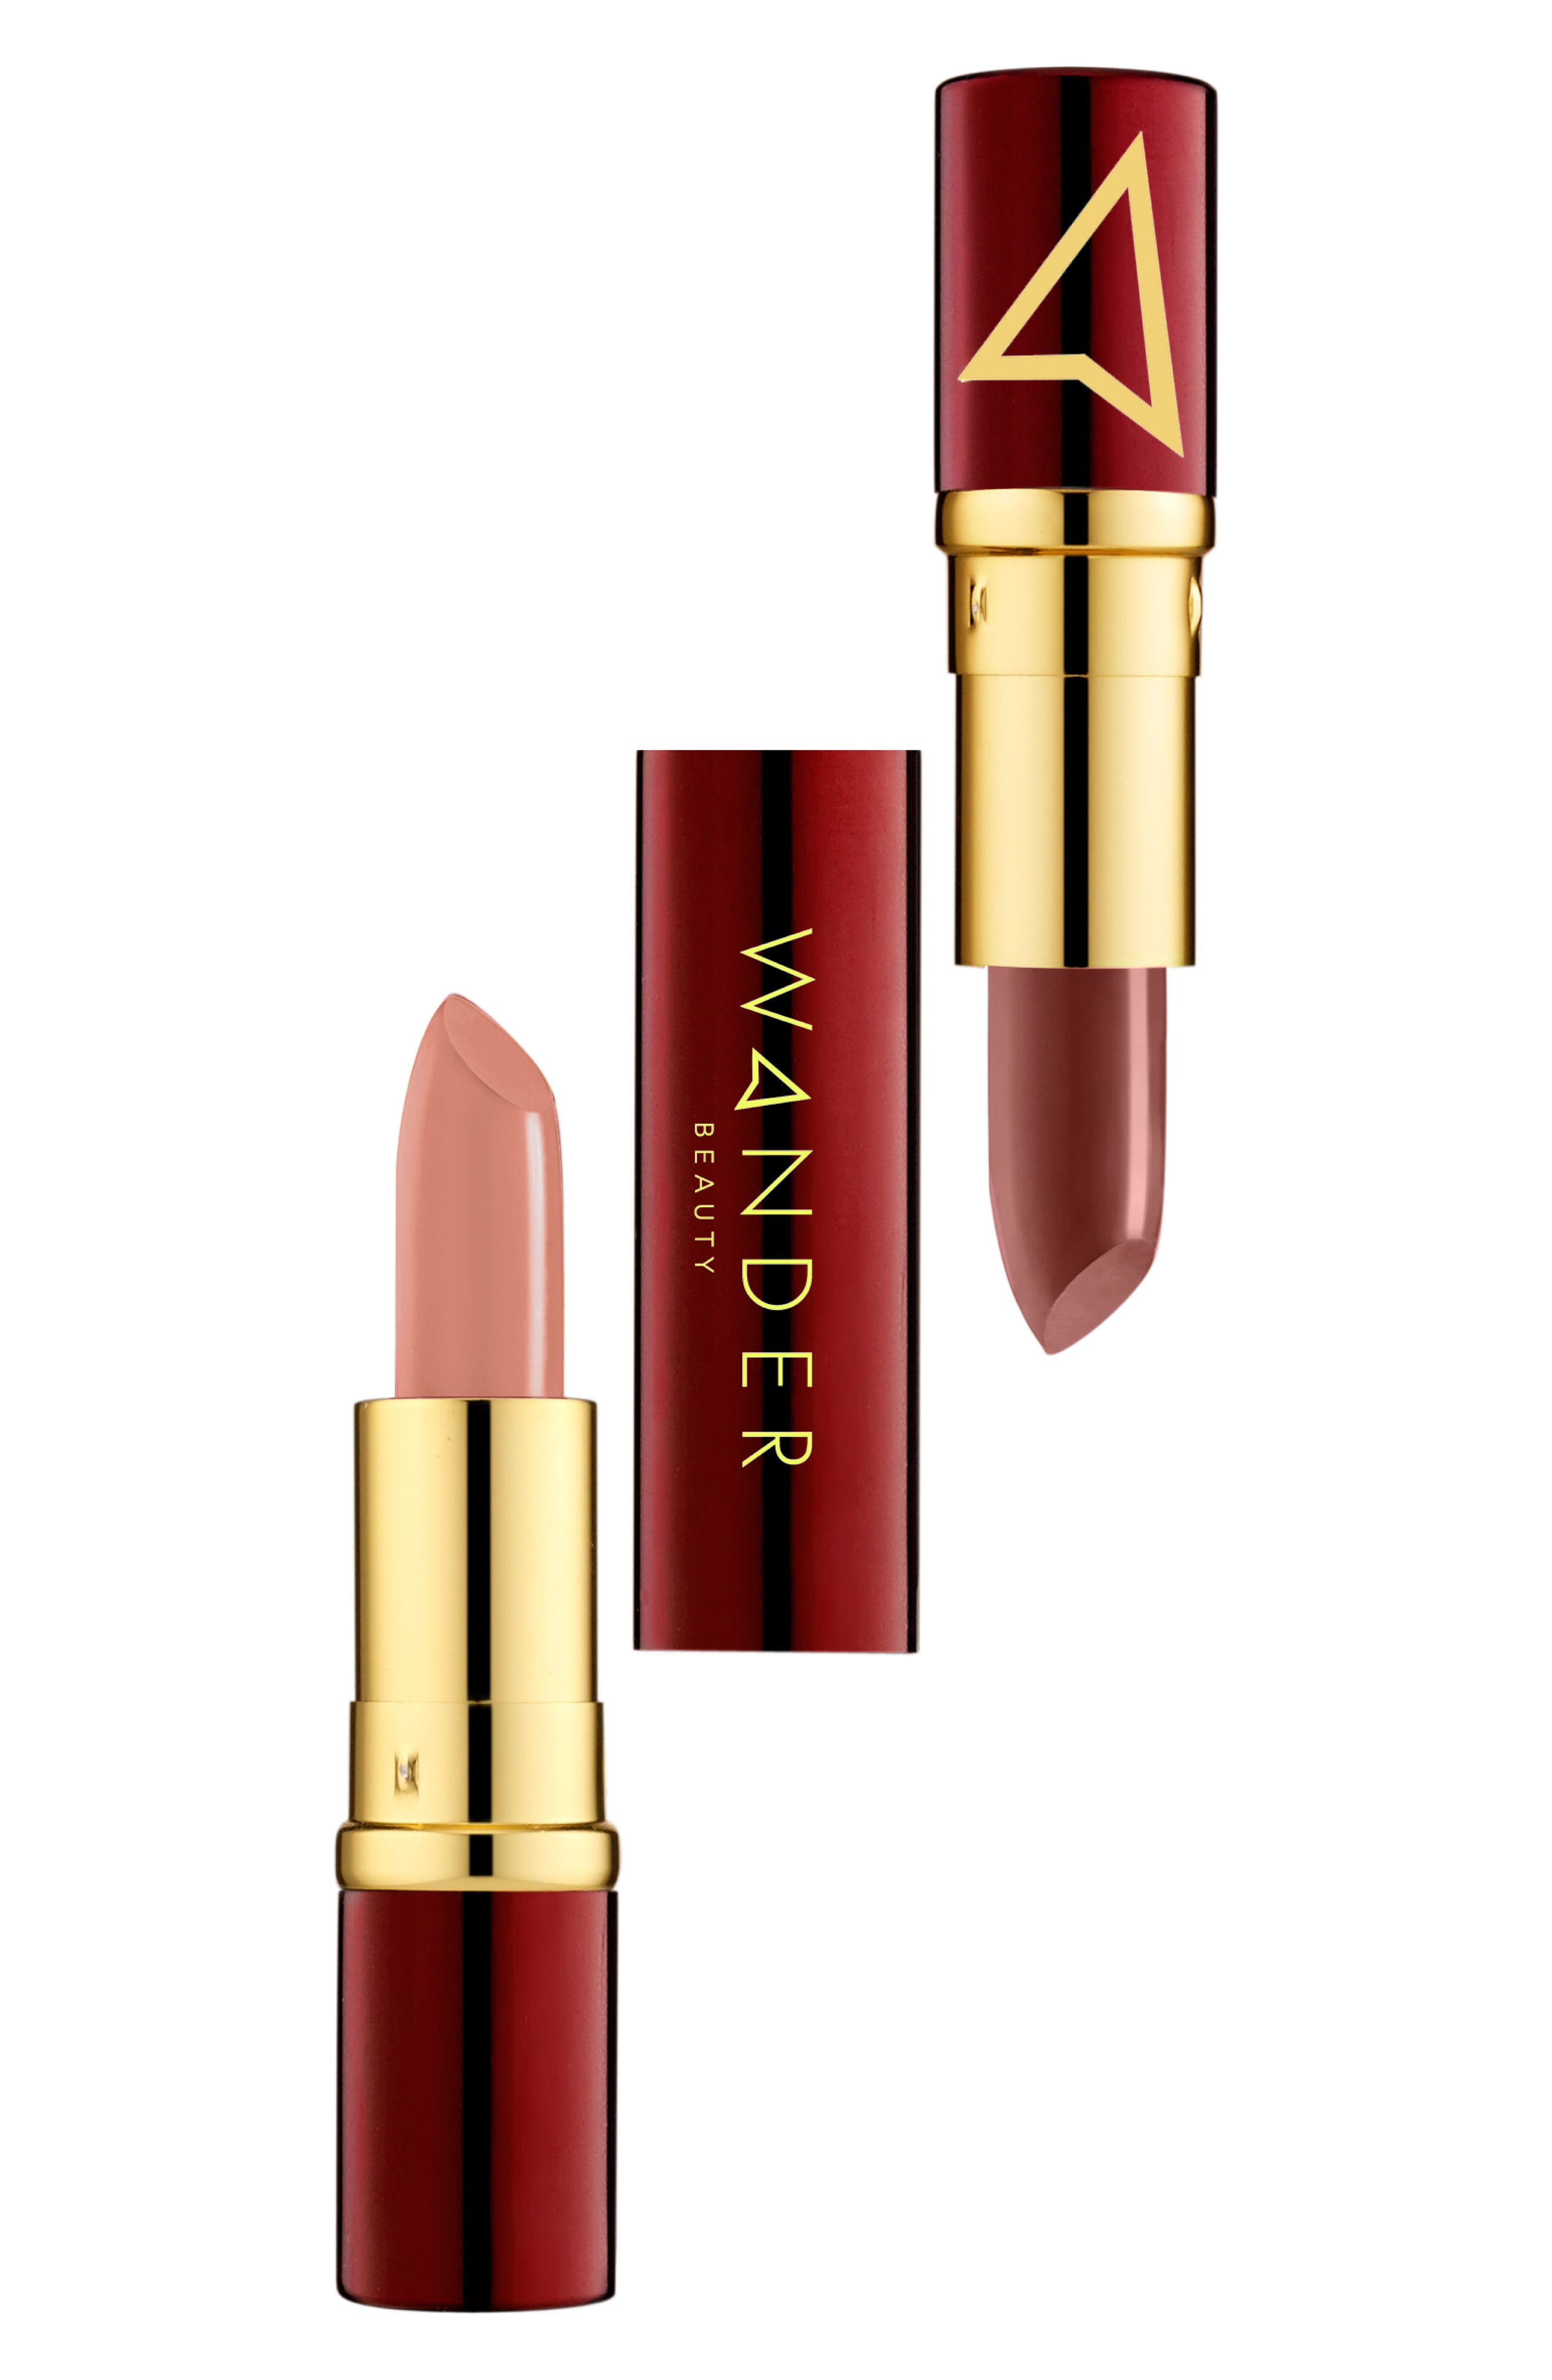 Wanderout Dual Lipstick,                             Main thumbnail 1, color,                             GIRL BOSS/MISS BEHAVE